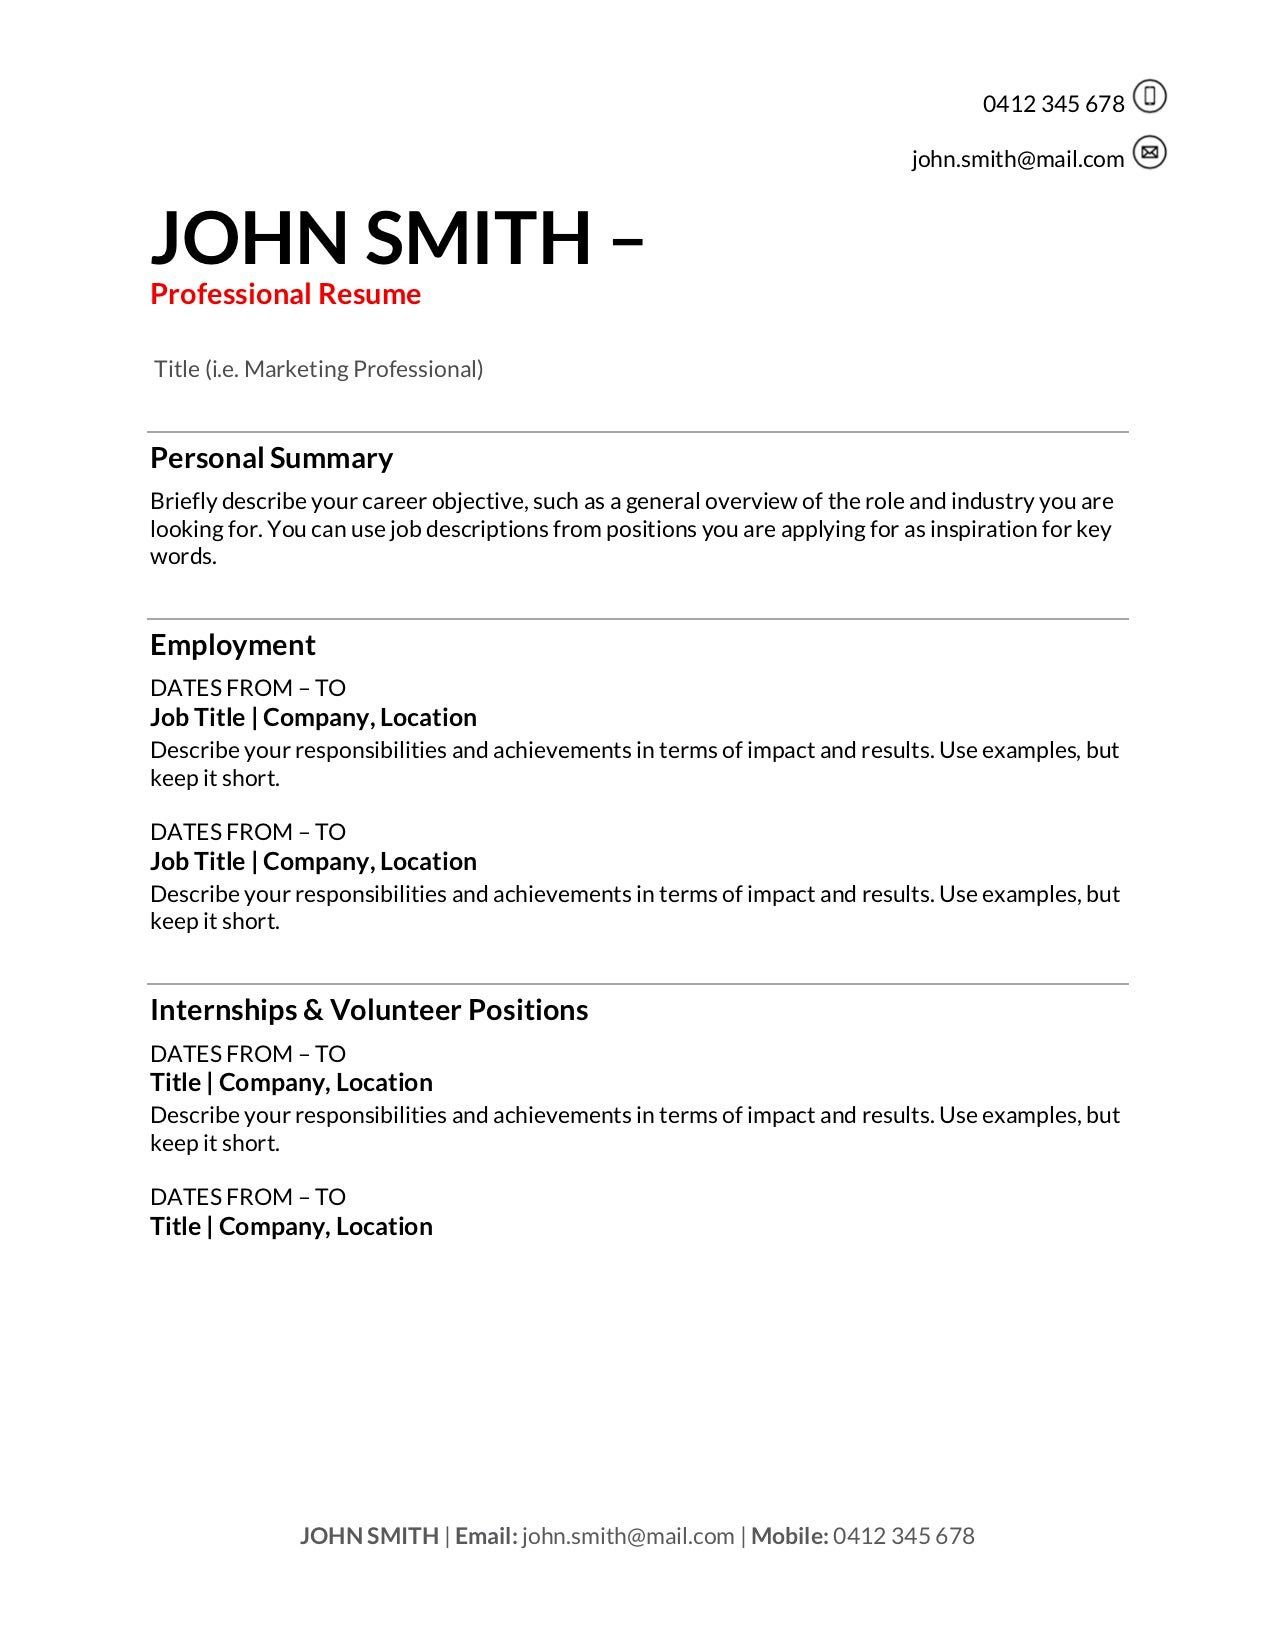 010 Fantastic Professional Resume Template Free Download Word High Definition  Cv 2020 Format With PhotoFull